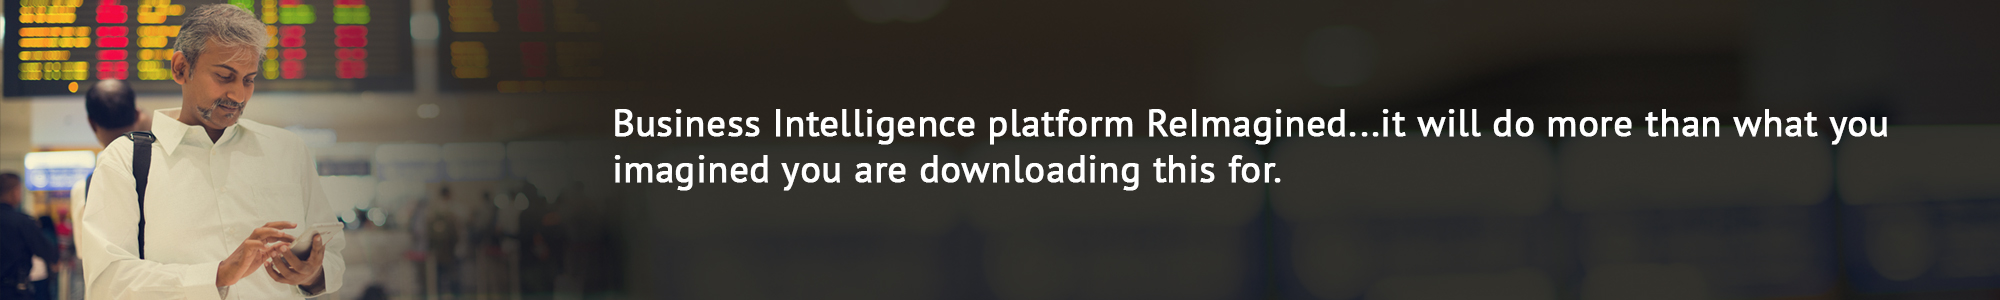 Business Intelligence platform ReImagined...it will do more than what you